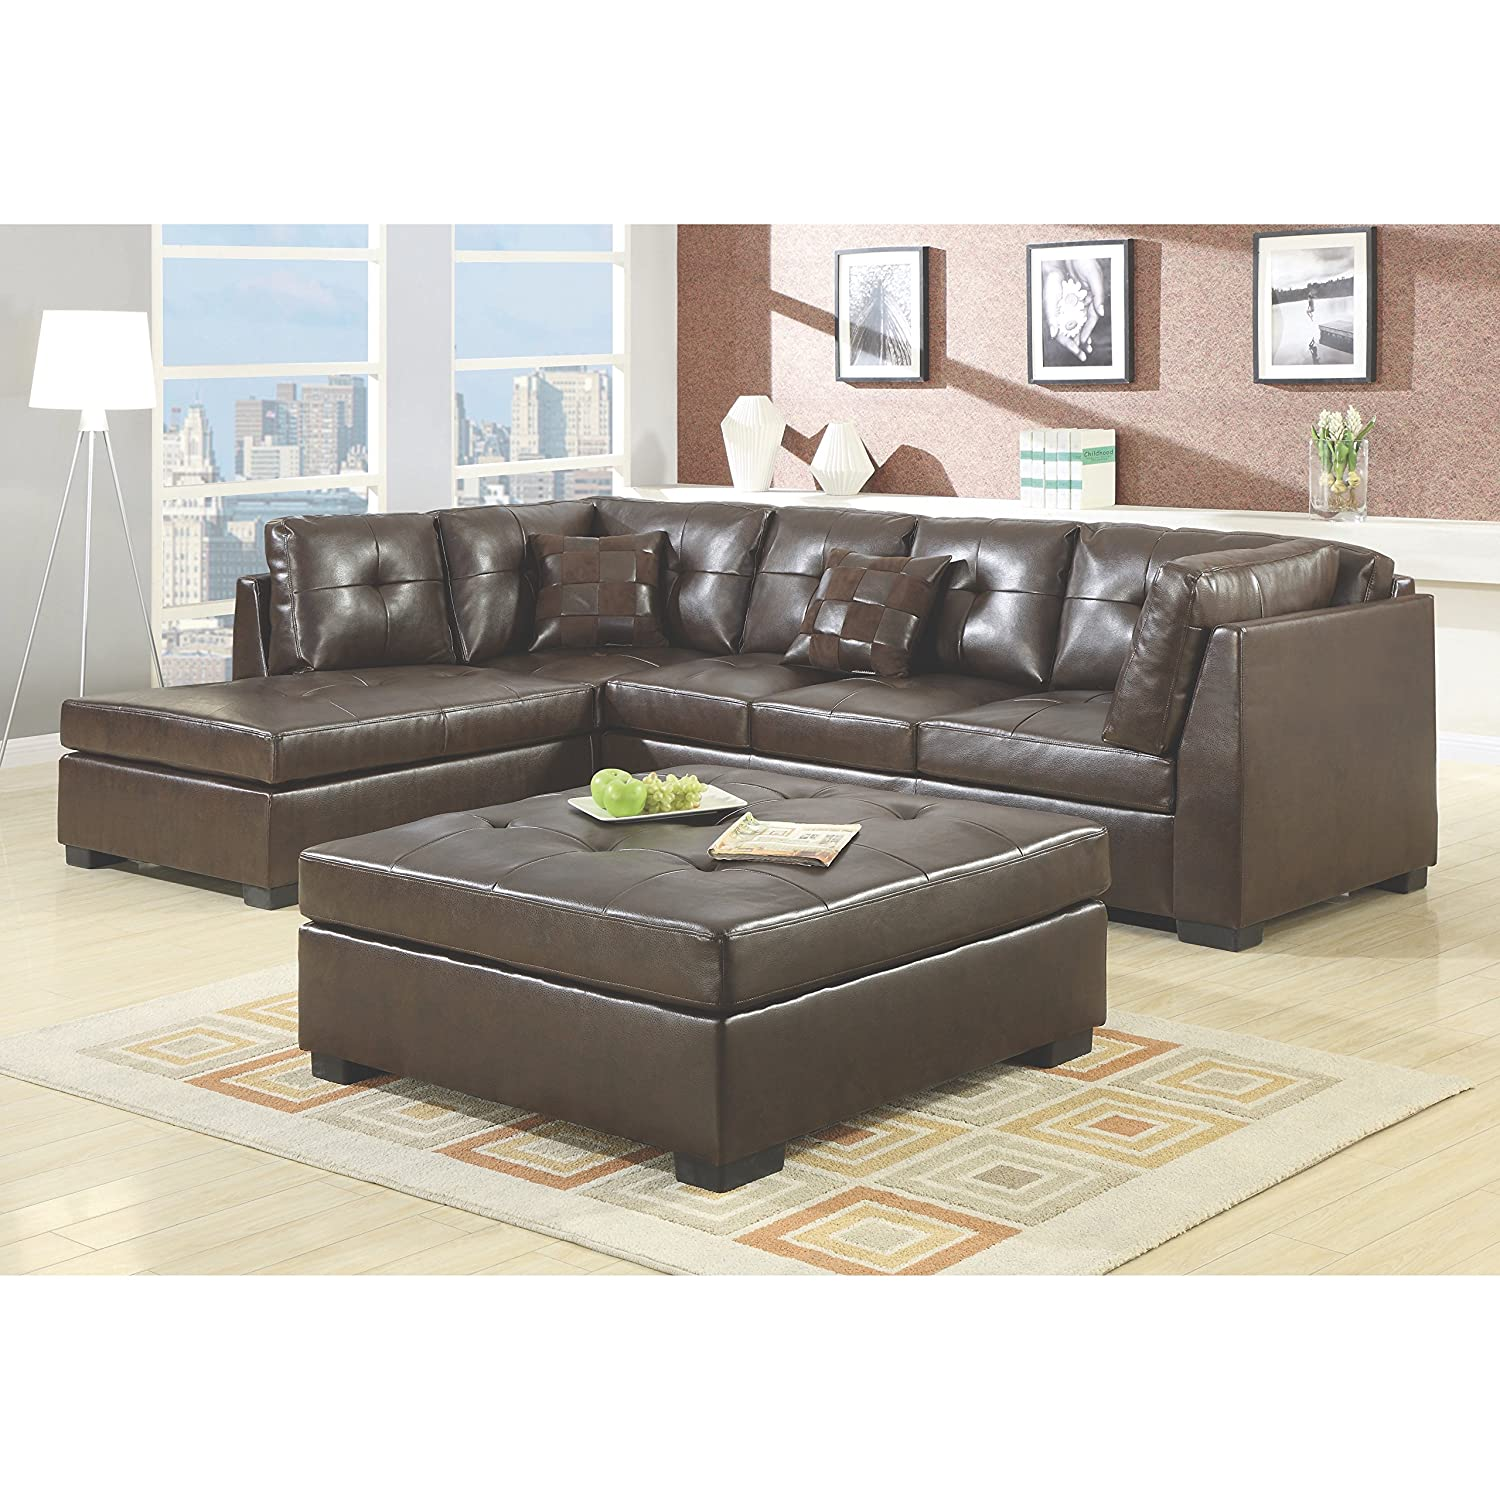 Attractive Amazon.com: Coaster Home Furnishings 500686 Casual Sectional Sofa, Brown:  Kitchen U0026 Dining